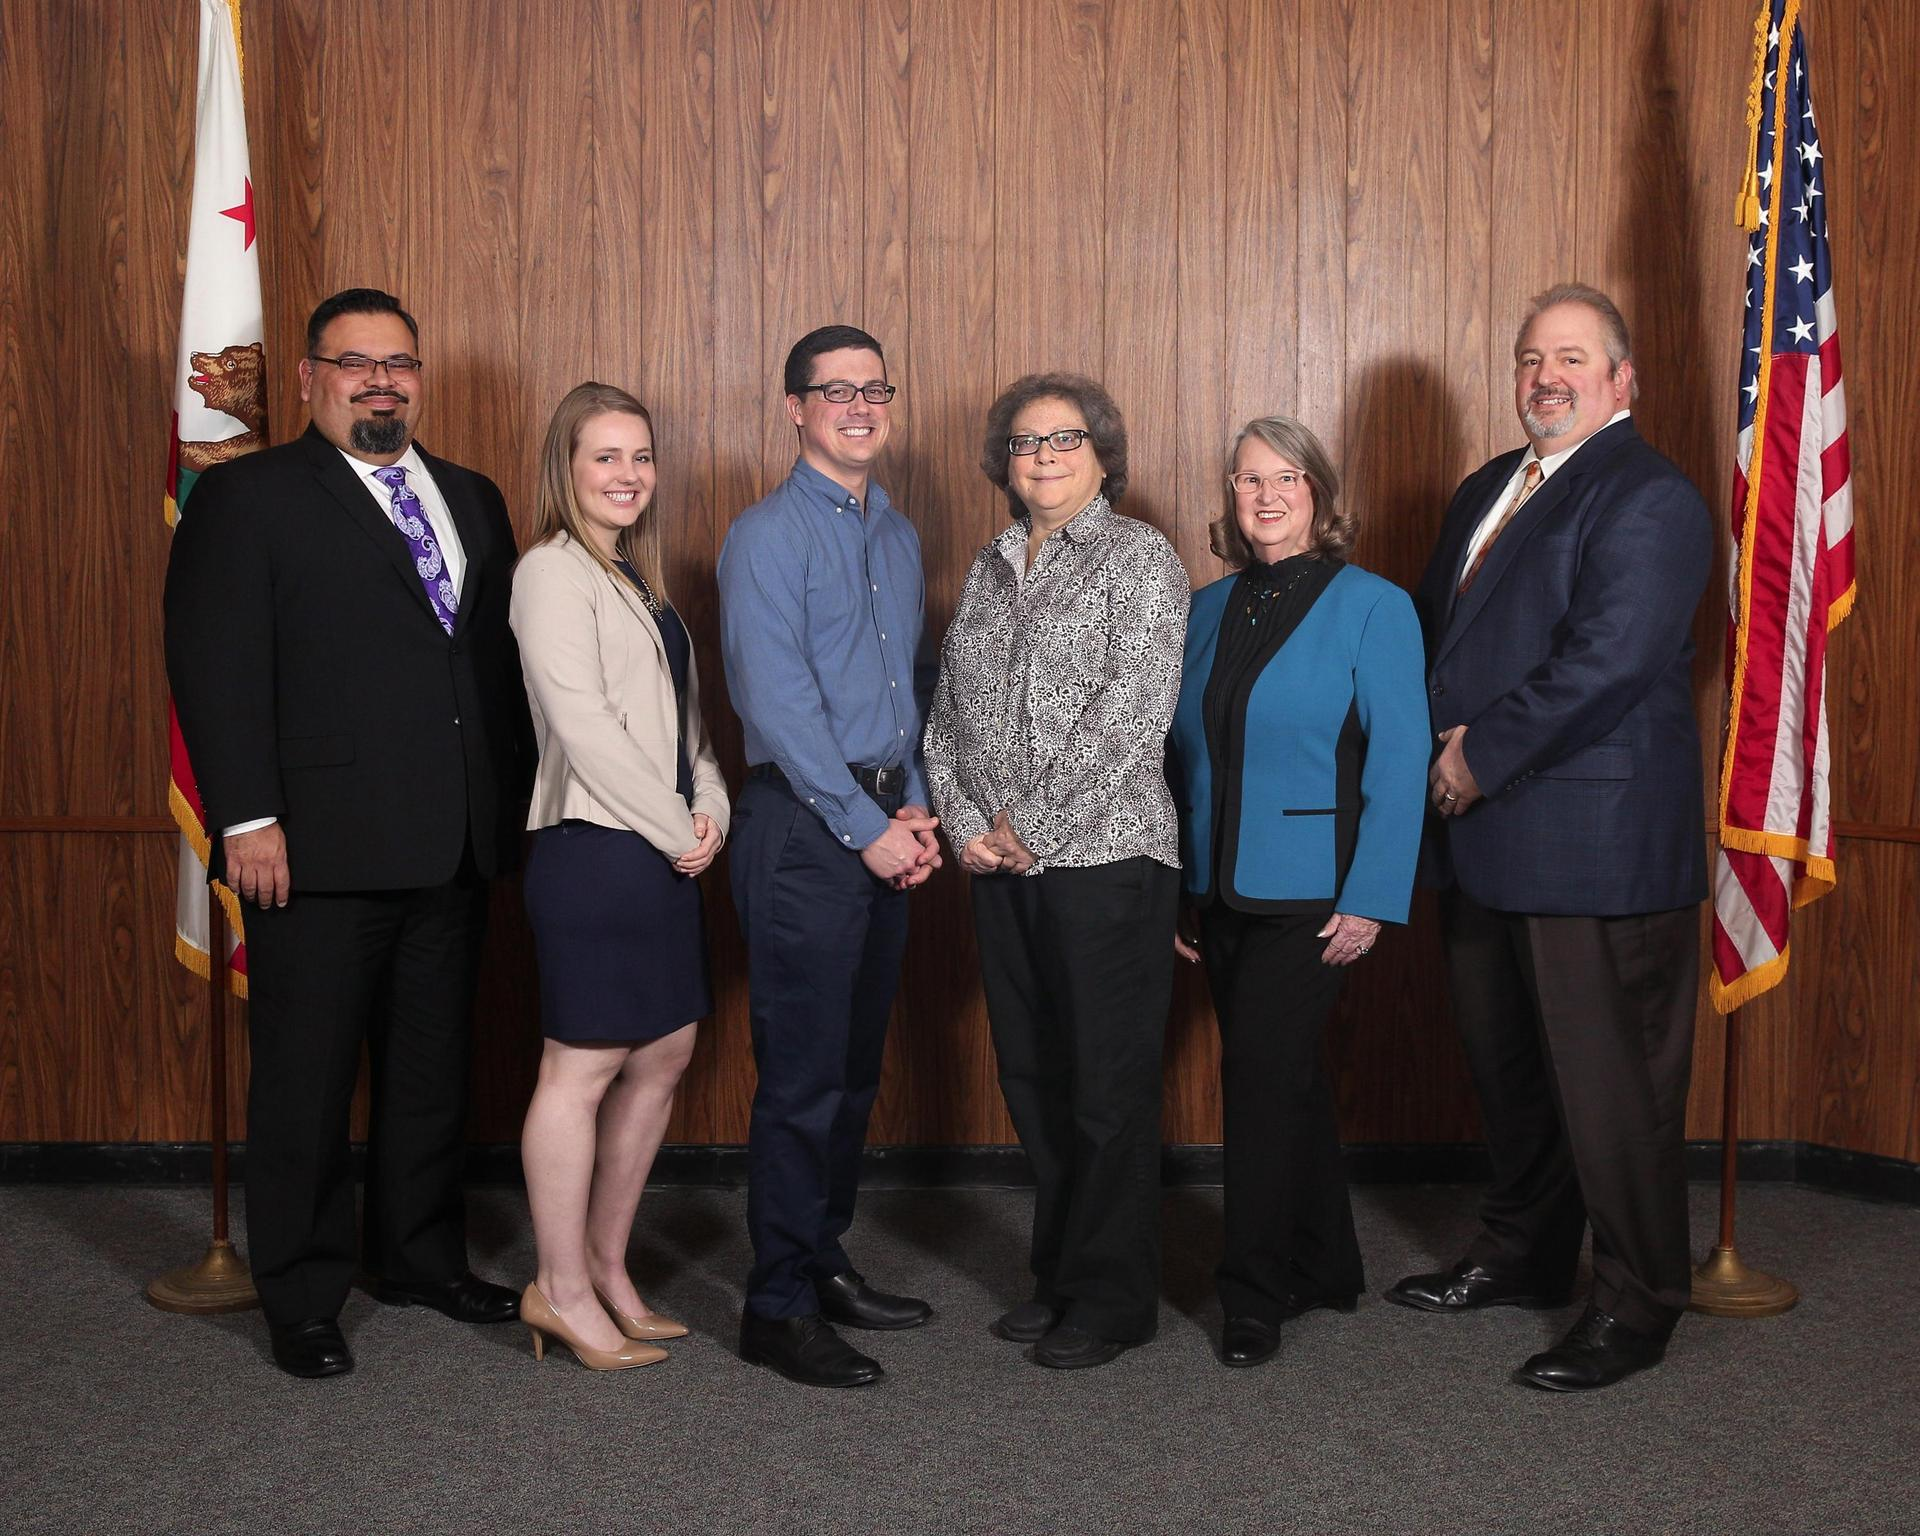 Board of Trustees, pictured with Superintendent Dr. Robert Bravo:  Stacey Brown, Kalen Gallagher, Robert Varich, Kristiina Arrasmith, Linda Goytia